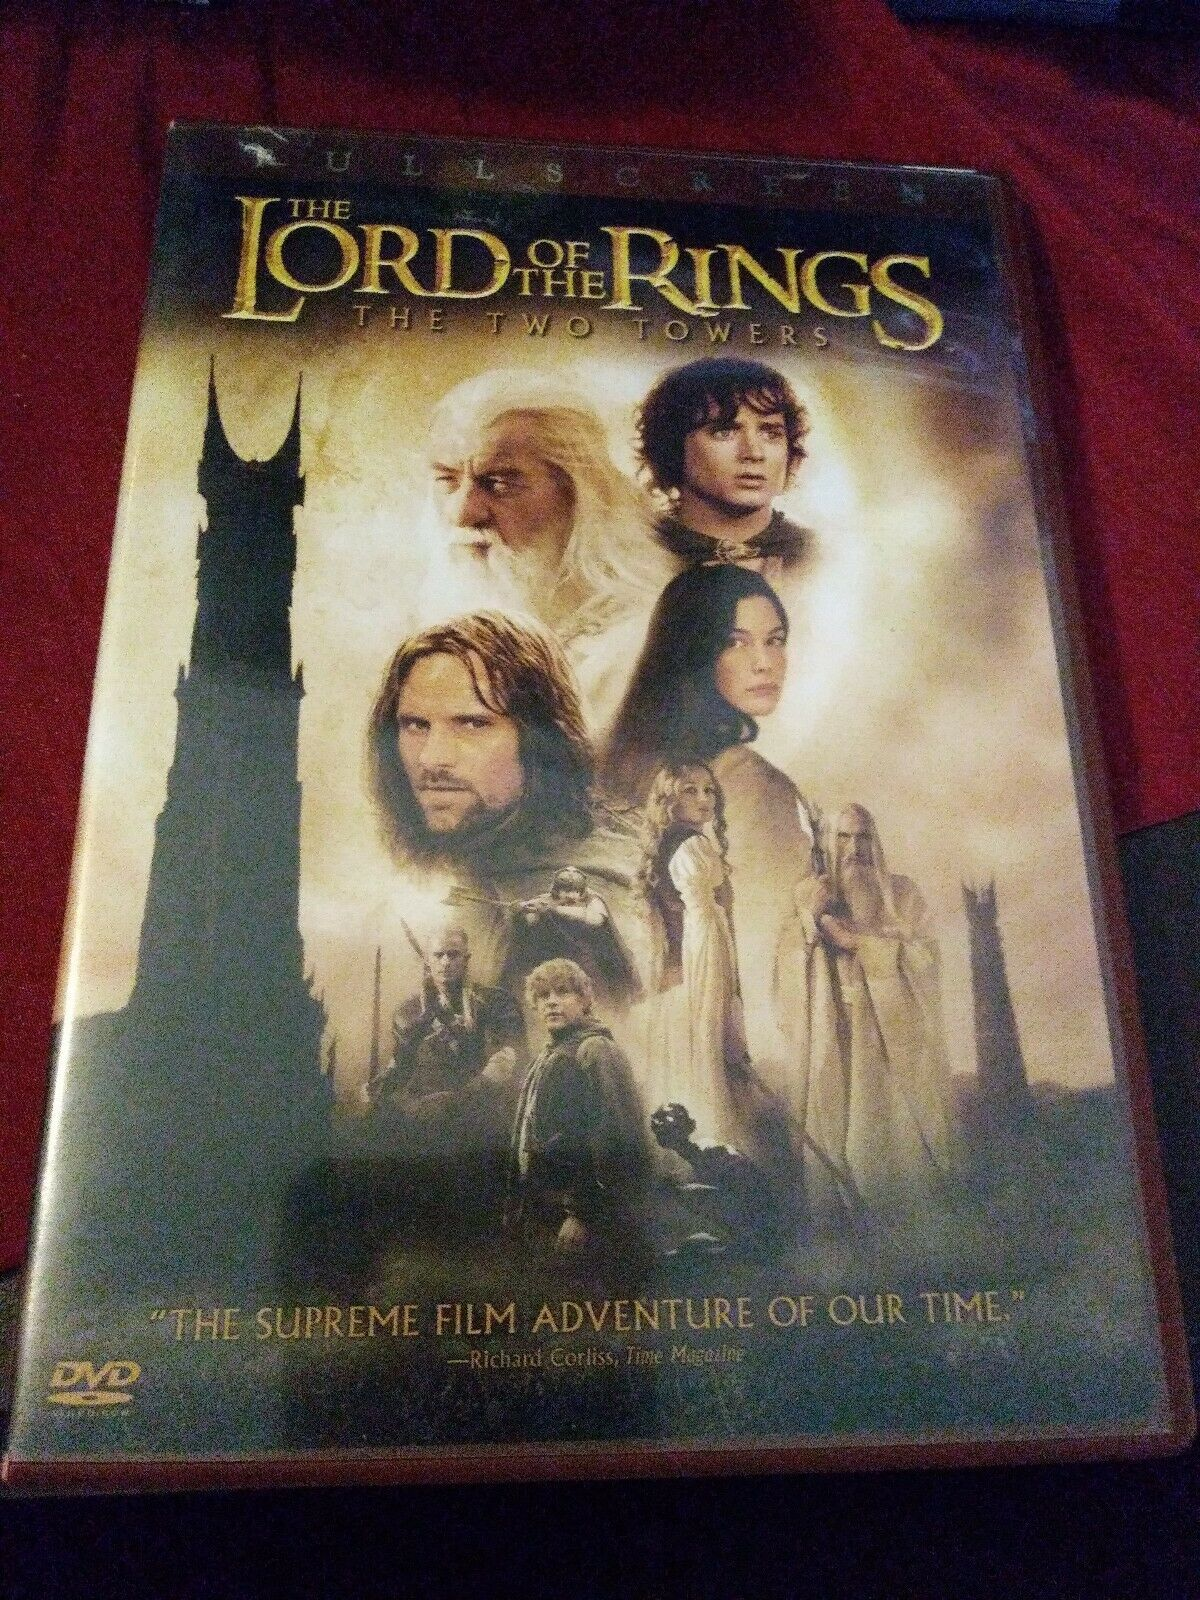 Primary image for The Lord of the Rings: The Two Towers (DVD, 2003, 2-Disc Set, C5 DISC ONLY